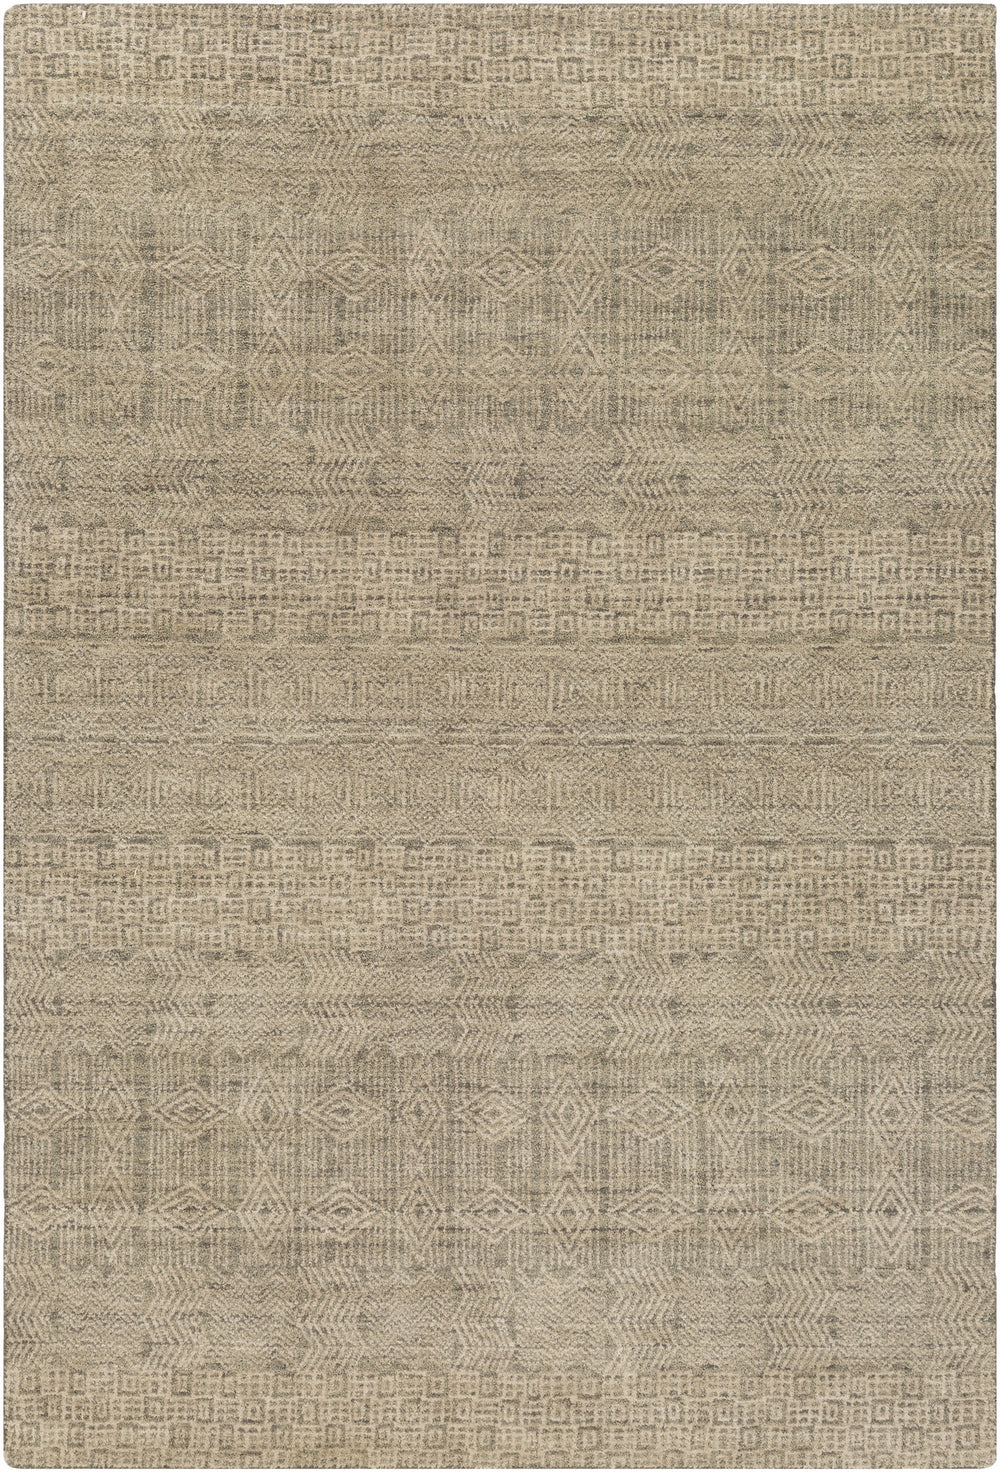 Surya Claude Cau 1003 Area Rug Rug Savings